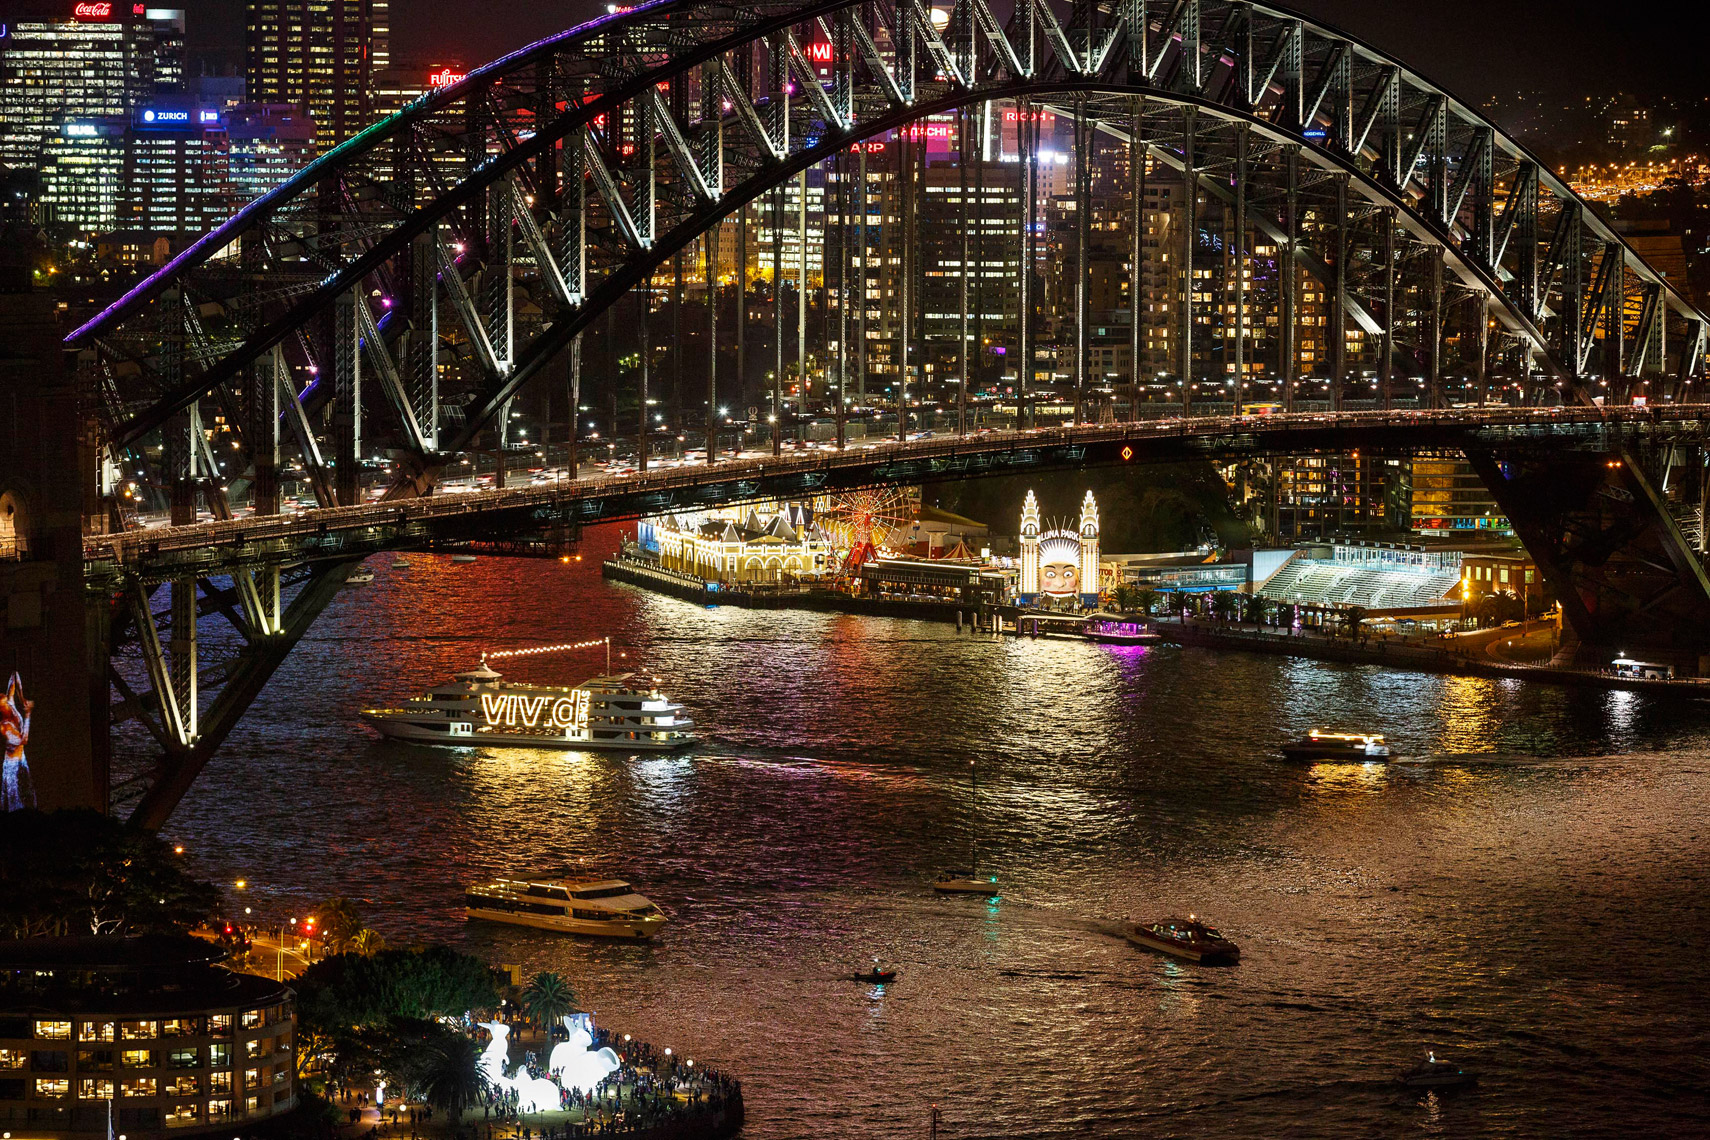 Vivid-Sydney-2014_Sydney-Harbour-Bridge-from-AMP-Tower_James-Horan_DNSW_023